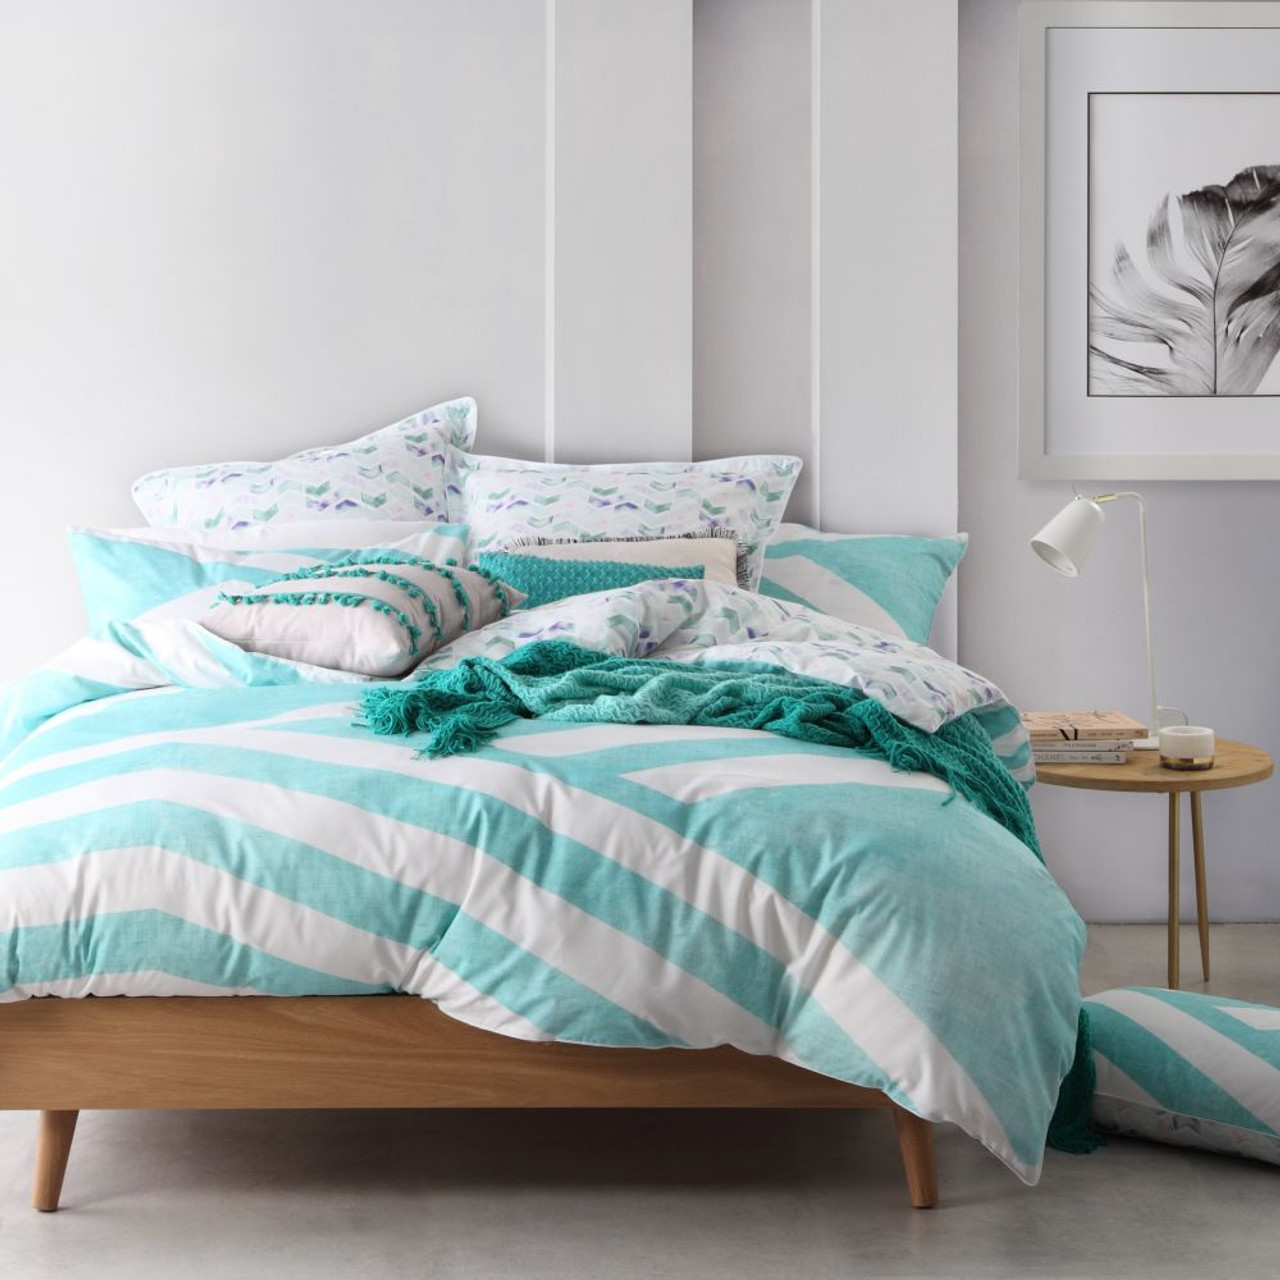 Calippo Teal King Quilt Cover Set By Logan Mason 5 Pce The Linen Gallery